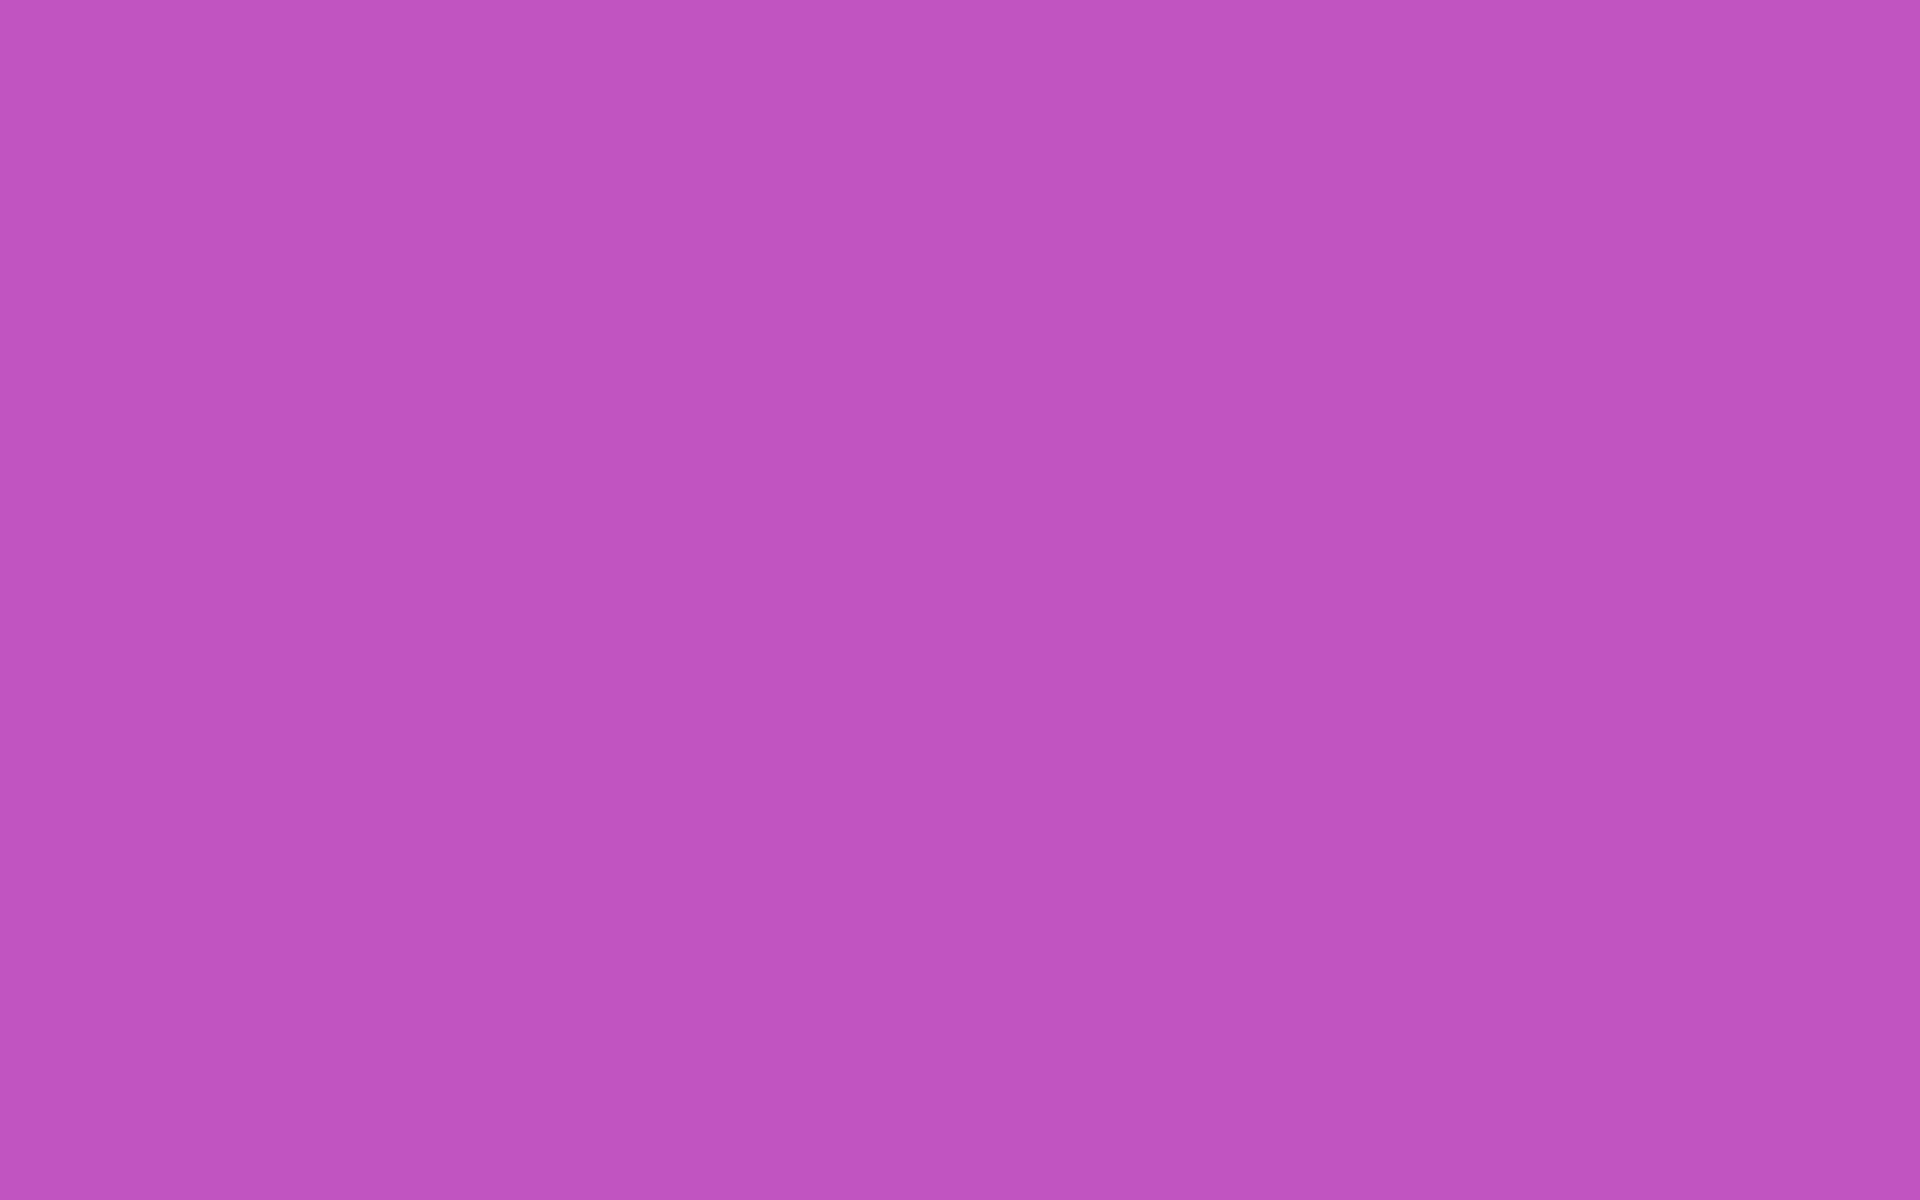 1920x1200 Deep Fuchsia Solid Color Background